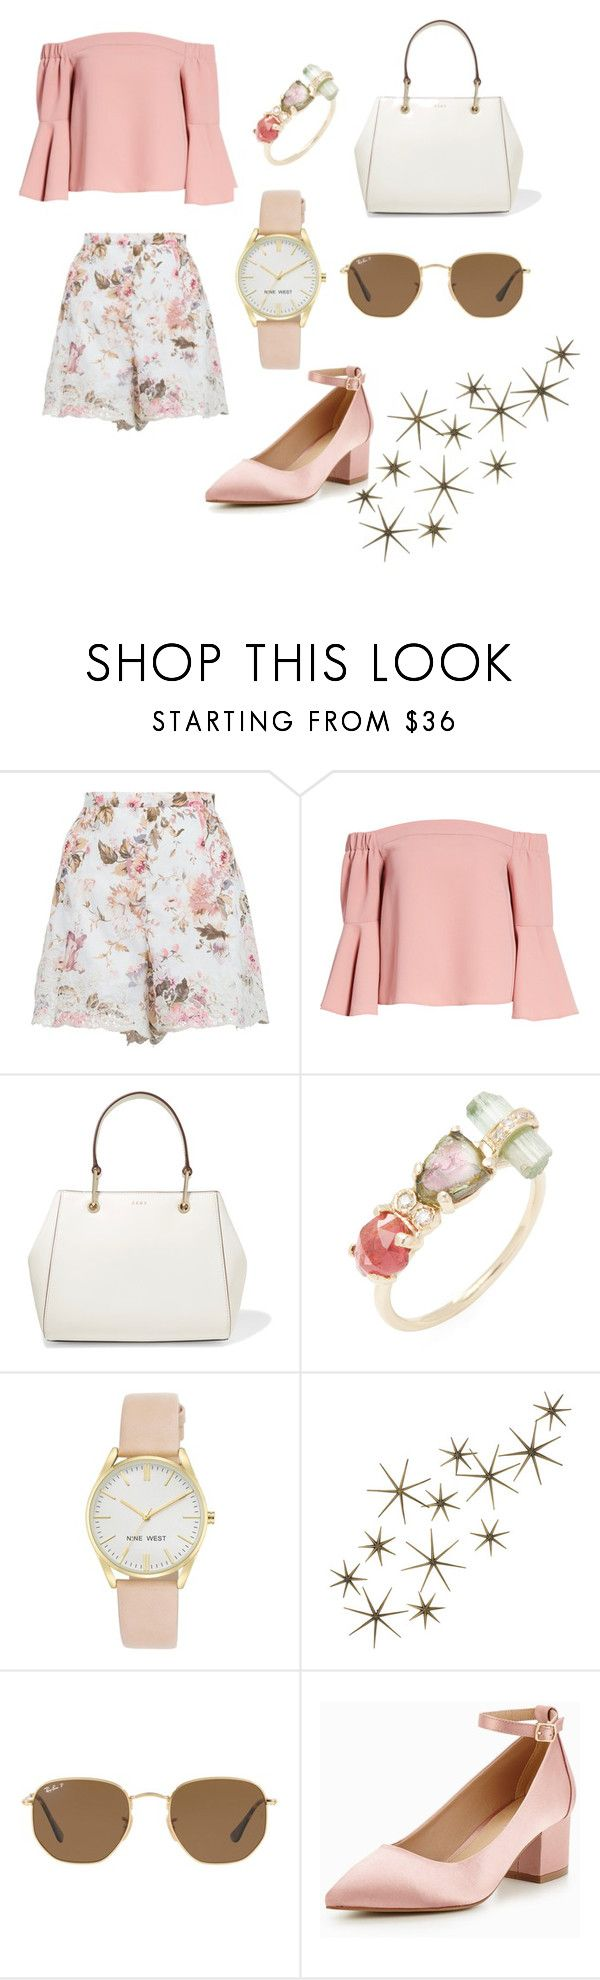 """""""Floral"""" by sebnemu ❤ liked on Polyvore featuring Zimmermann, Topshop, DKNY, Jacquie Aiche, Nine West, Global Views and Ray-Ban"""